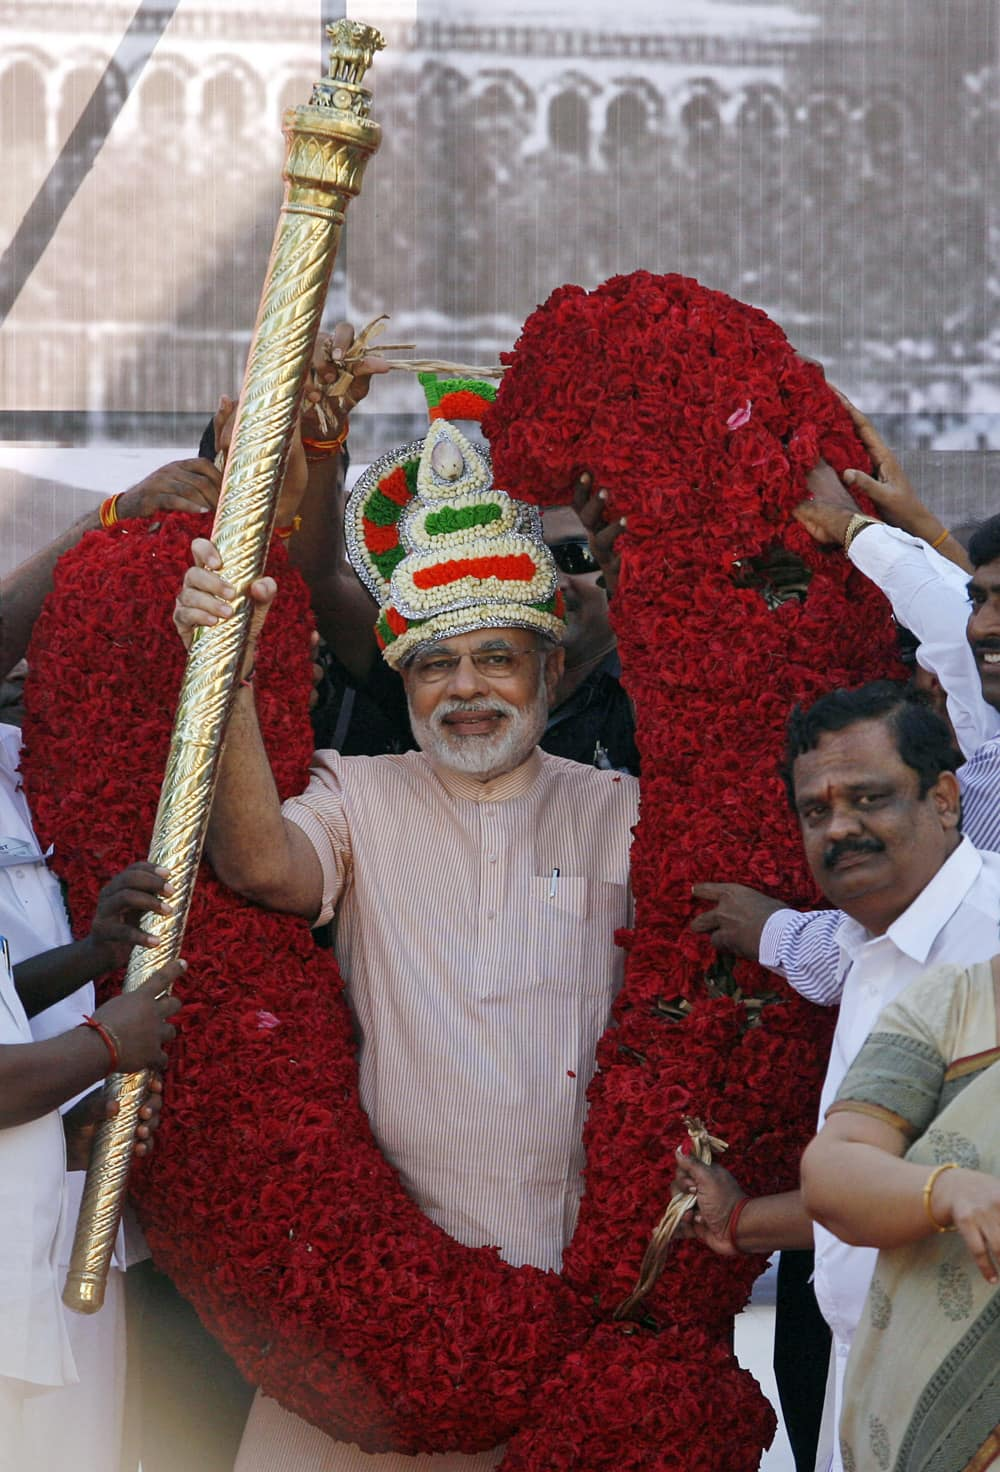 Gujarat state Chief Minister and Bharatiya Janata Party (BJP) leader Narendra Modi receives scepter and a floral garland during his visit to Chennai.